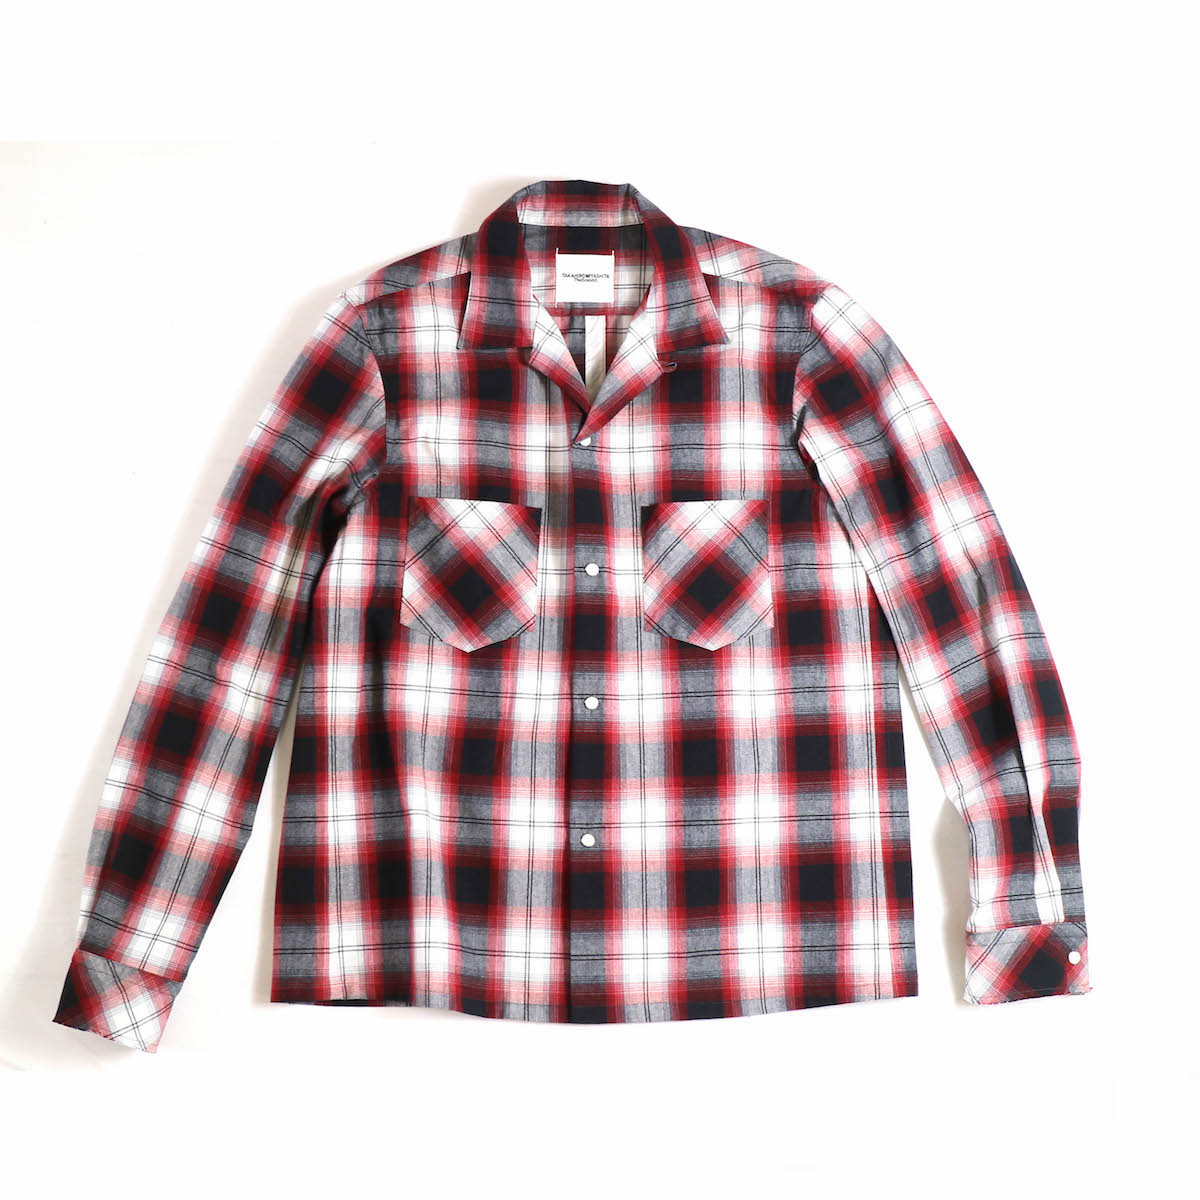 TAKAHIROMIYASHITATheSoloist. / sws.0012bSS18 work shirt. (ombre check) -black × red